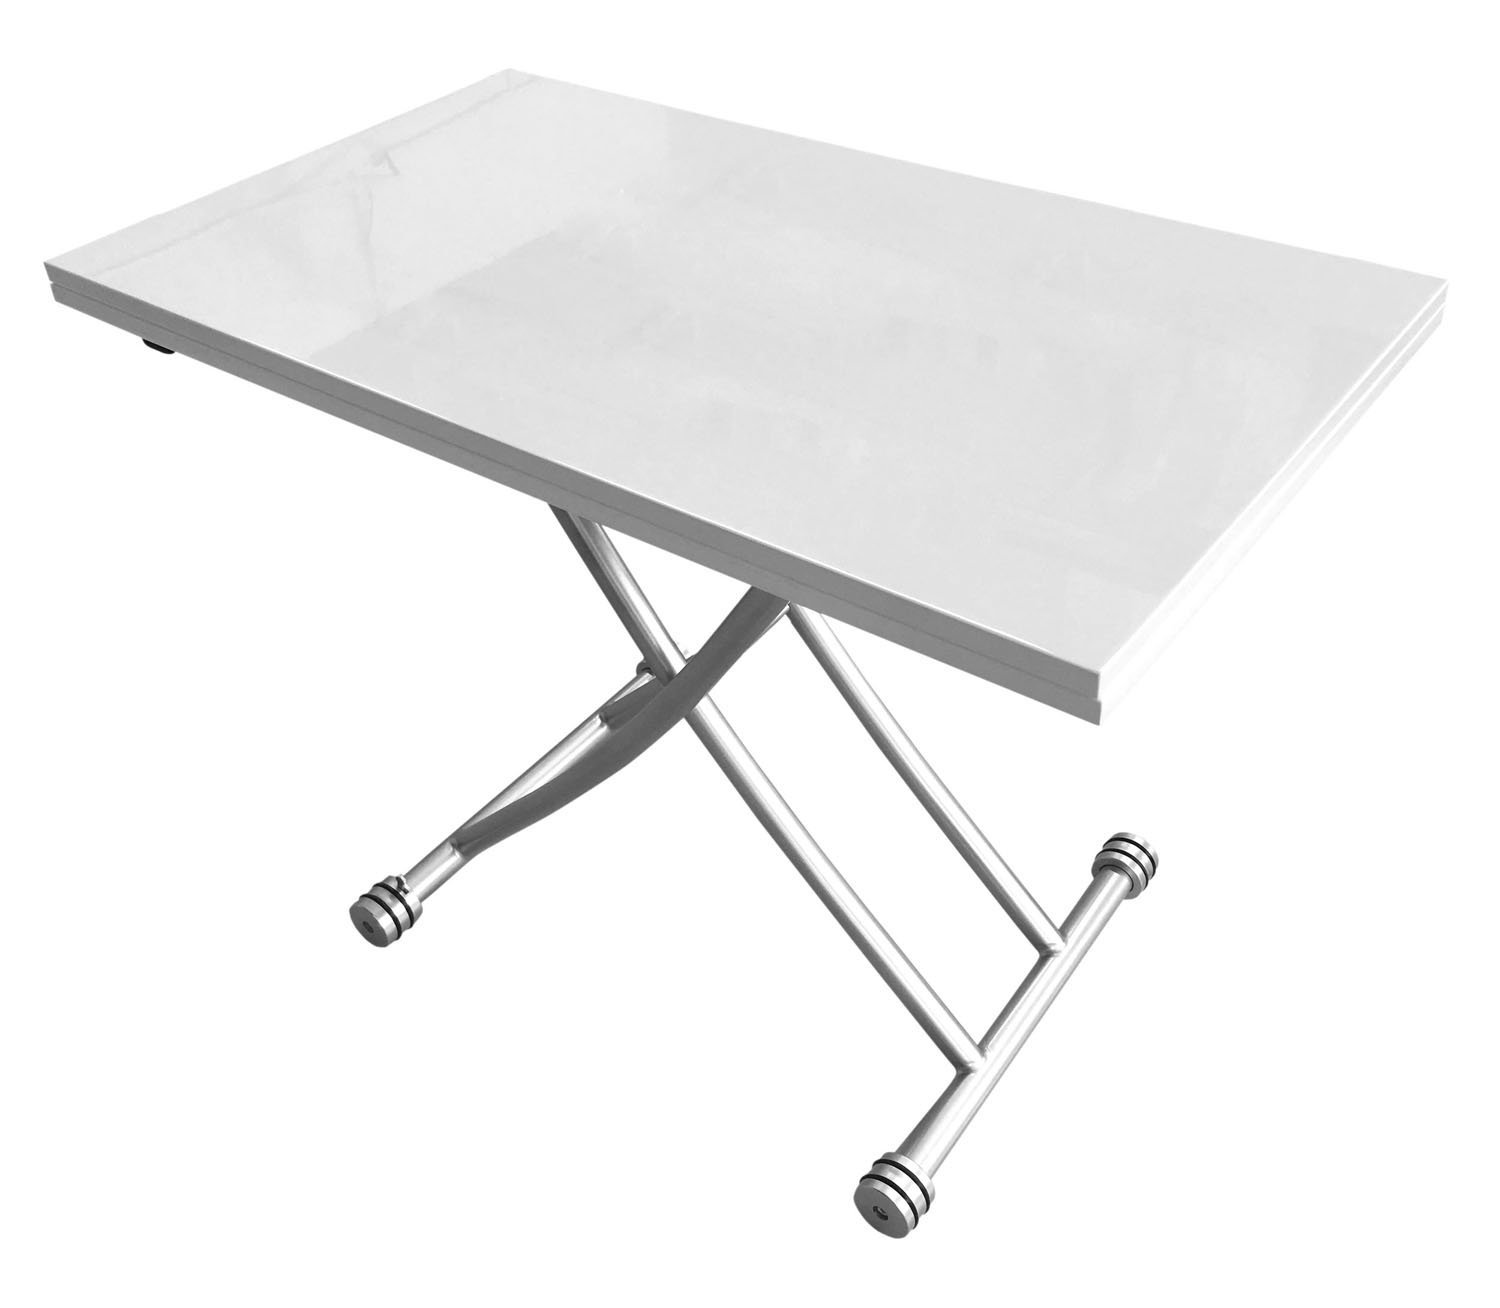 Corner Housewares Transforming X Coffee and Dining Table in High Gloss White Finish